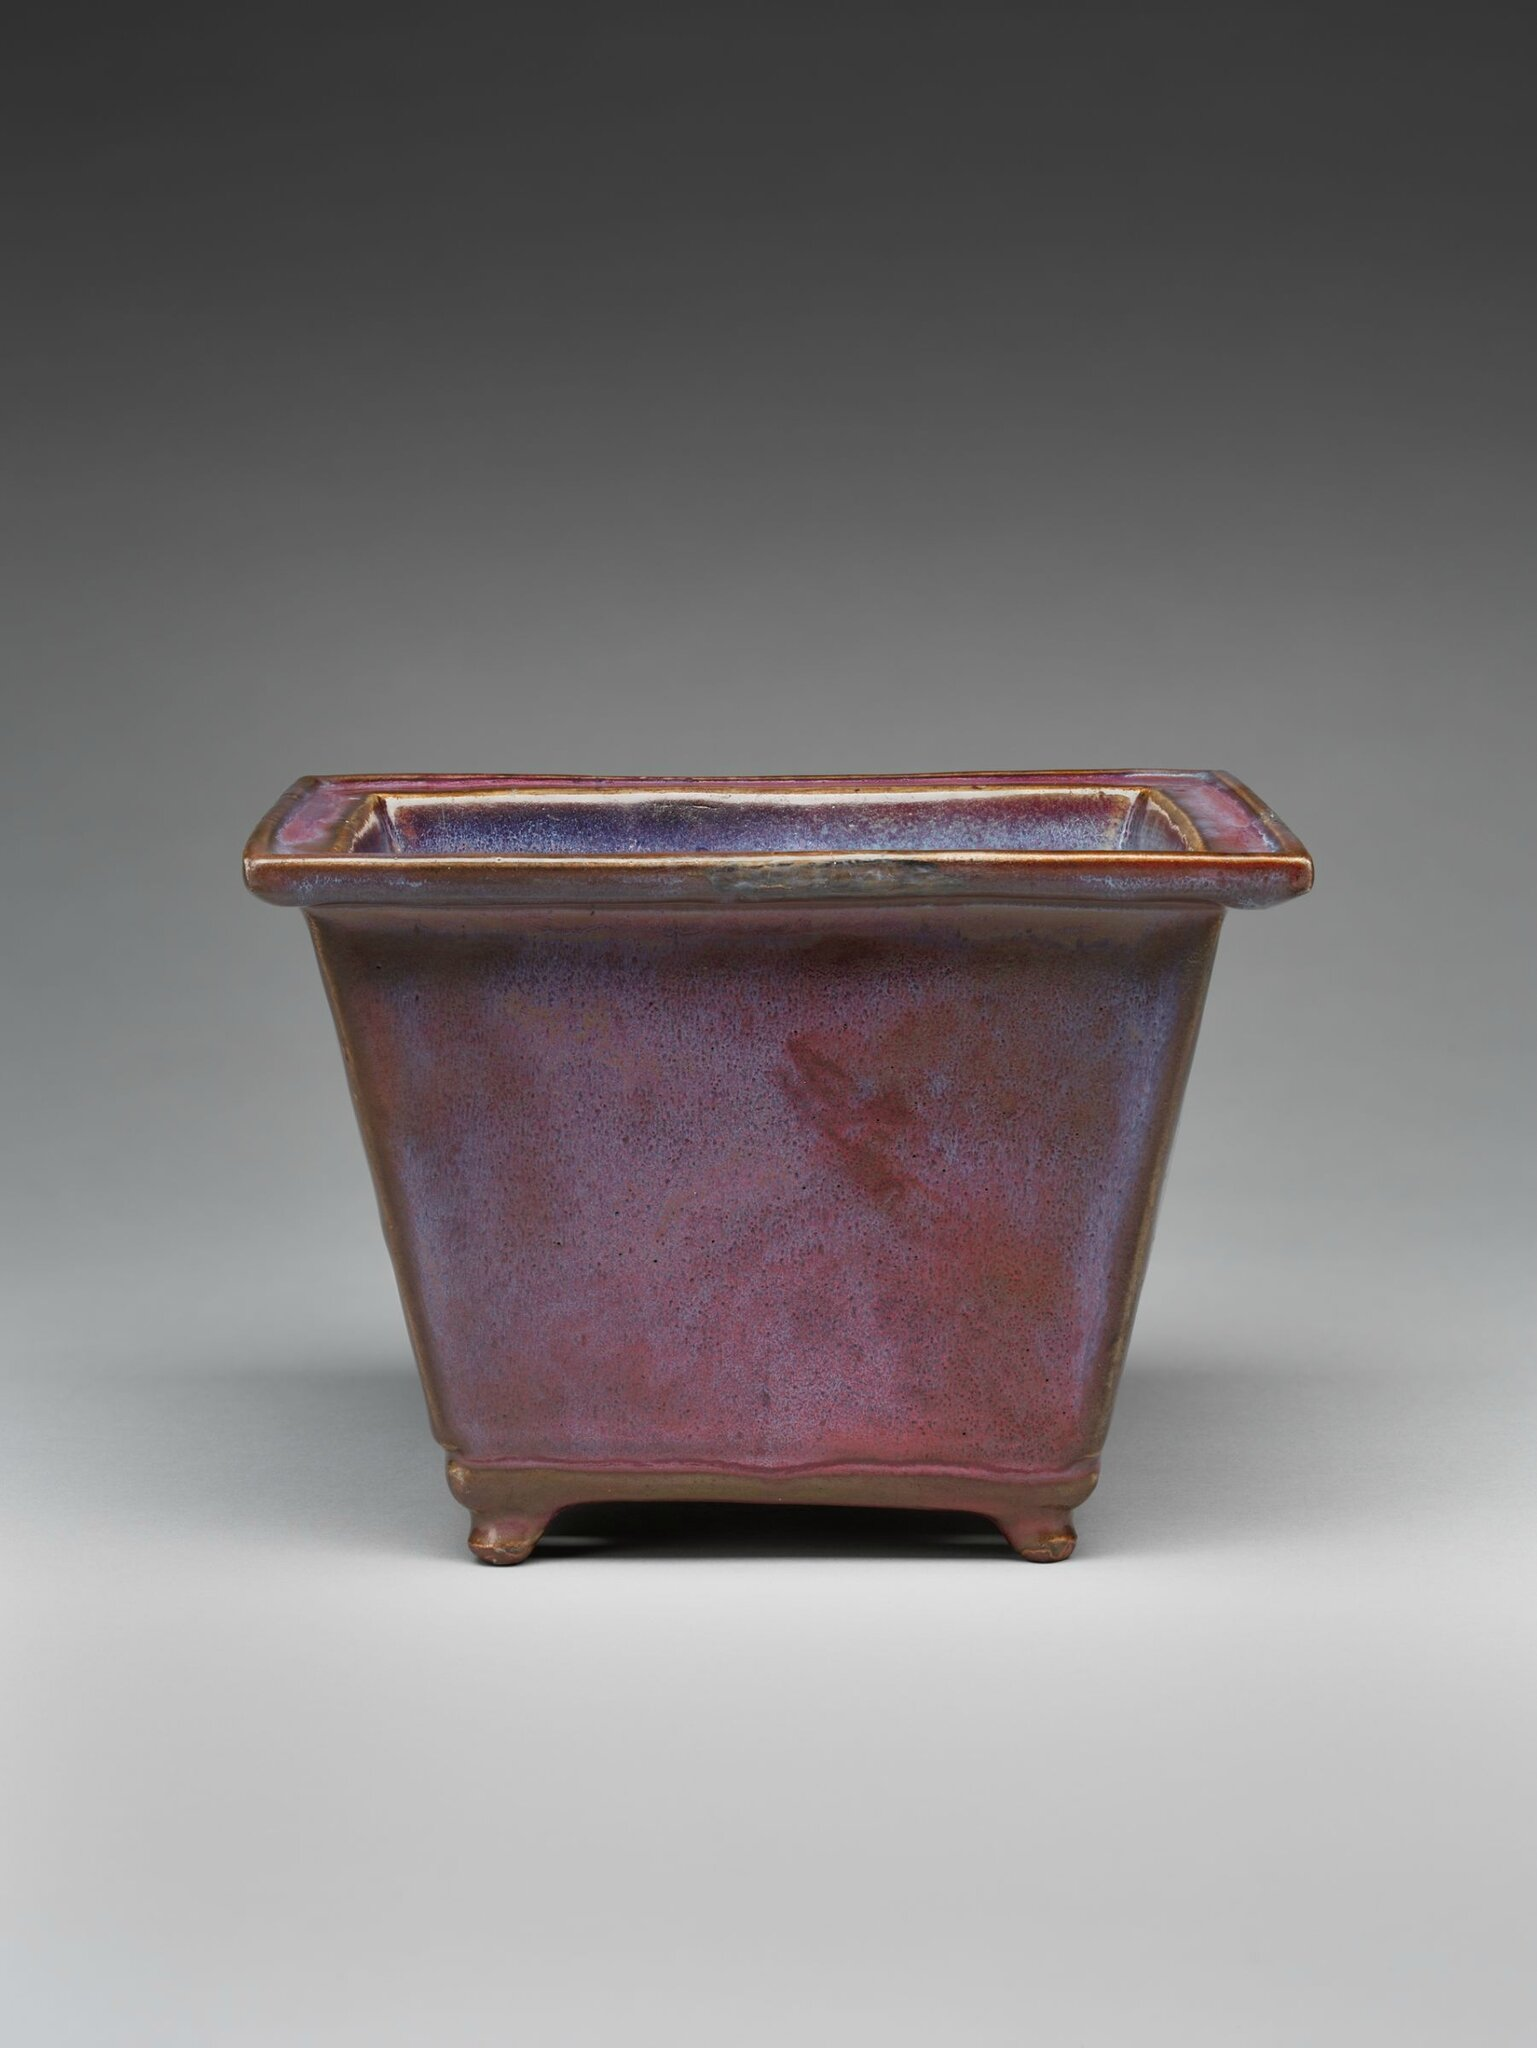 Rectangular Flowerpot with Four Small Feet, Ming dynasty, 1368-1644, probably 15th century (10)